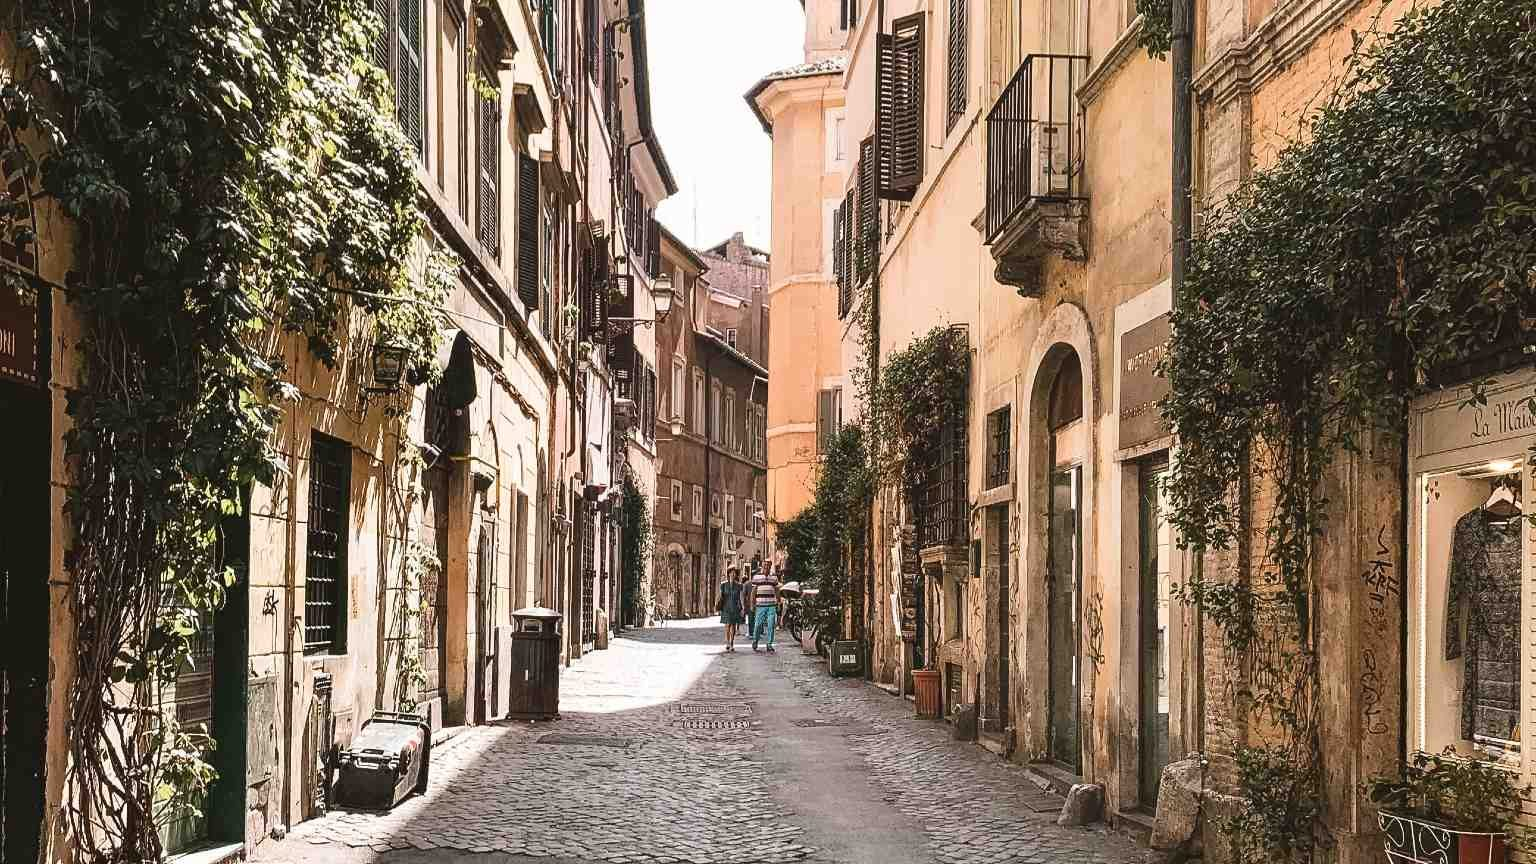 Laneway in Rome, Italy